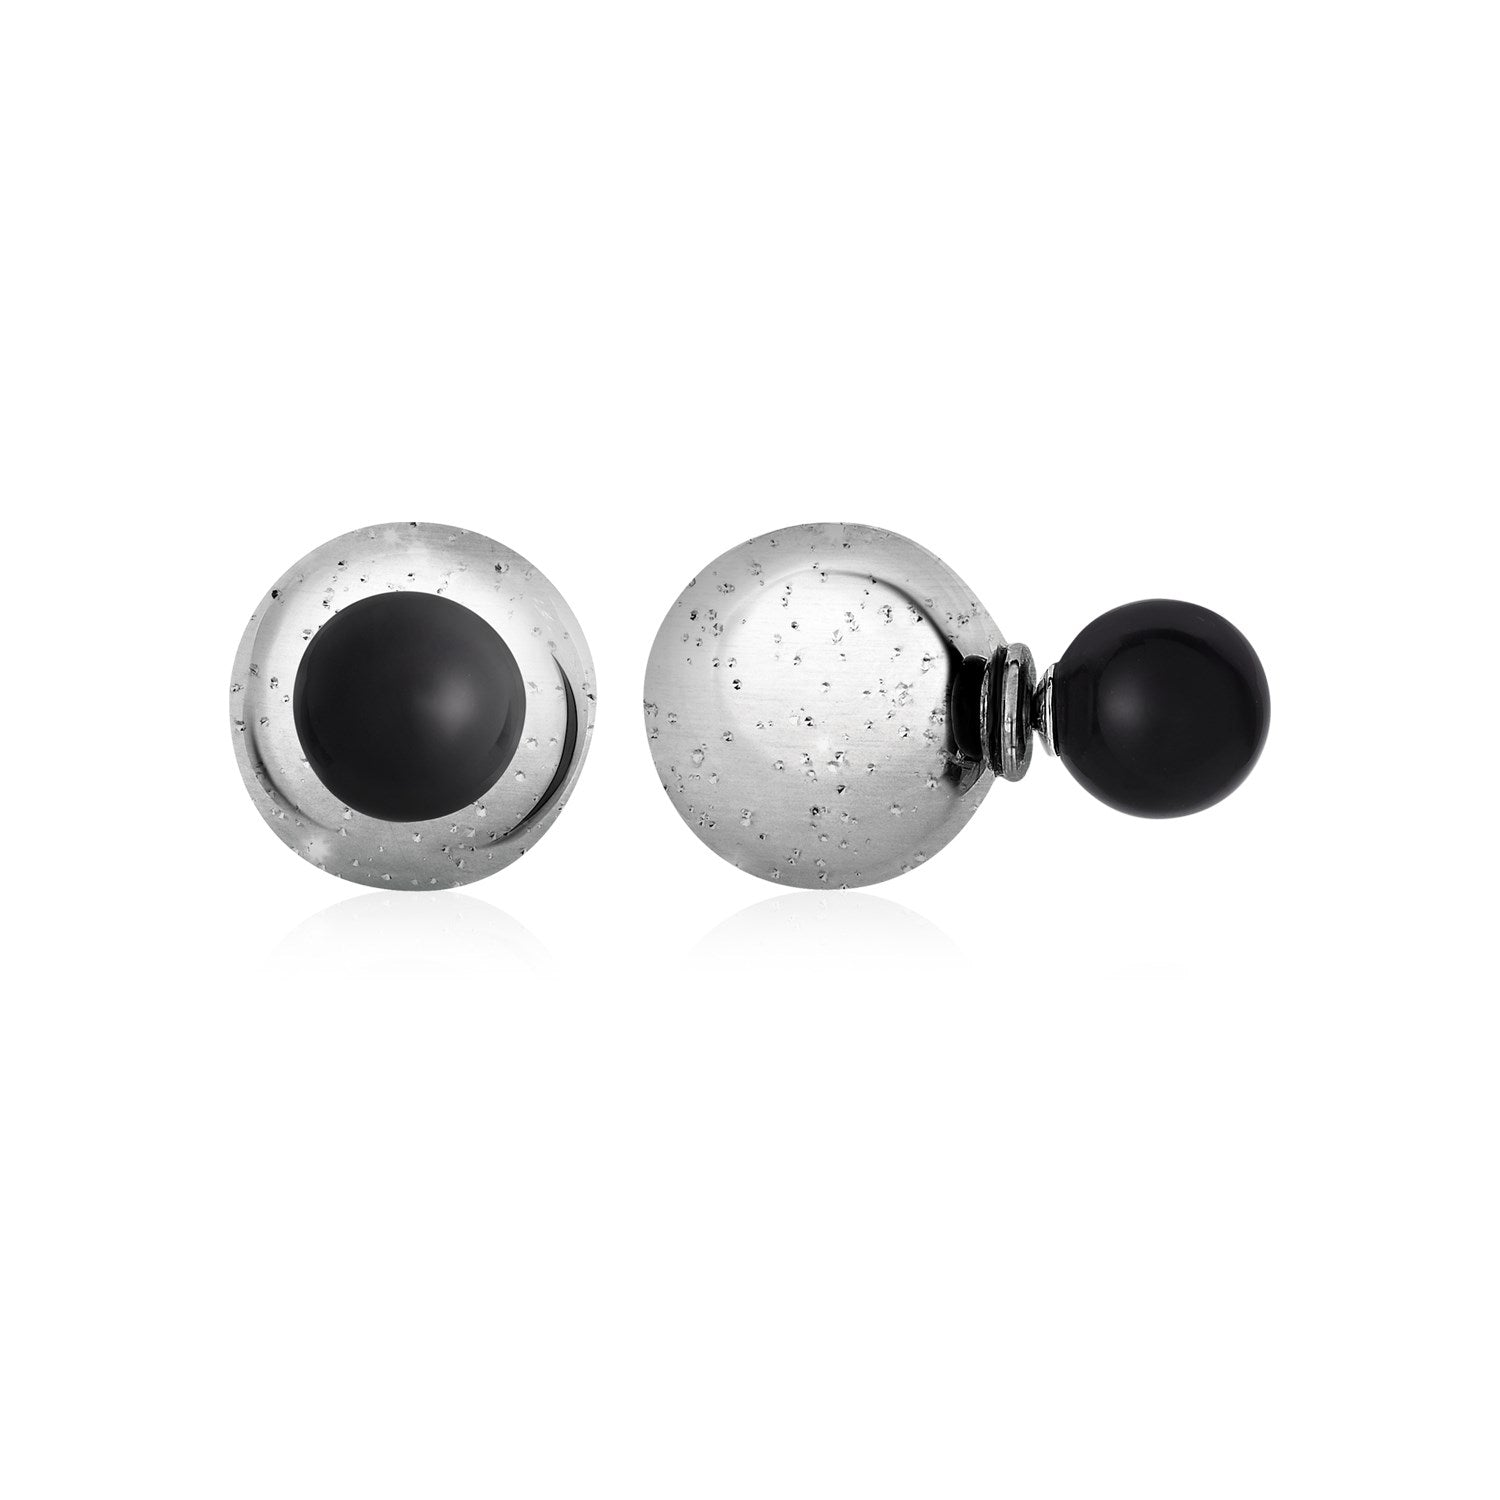 Textured Stud Earrings with Onyx in Sterling Silver